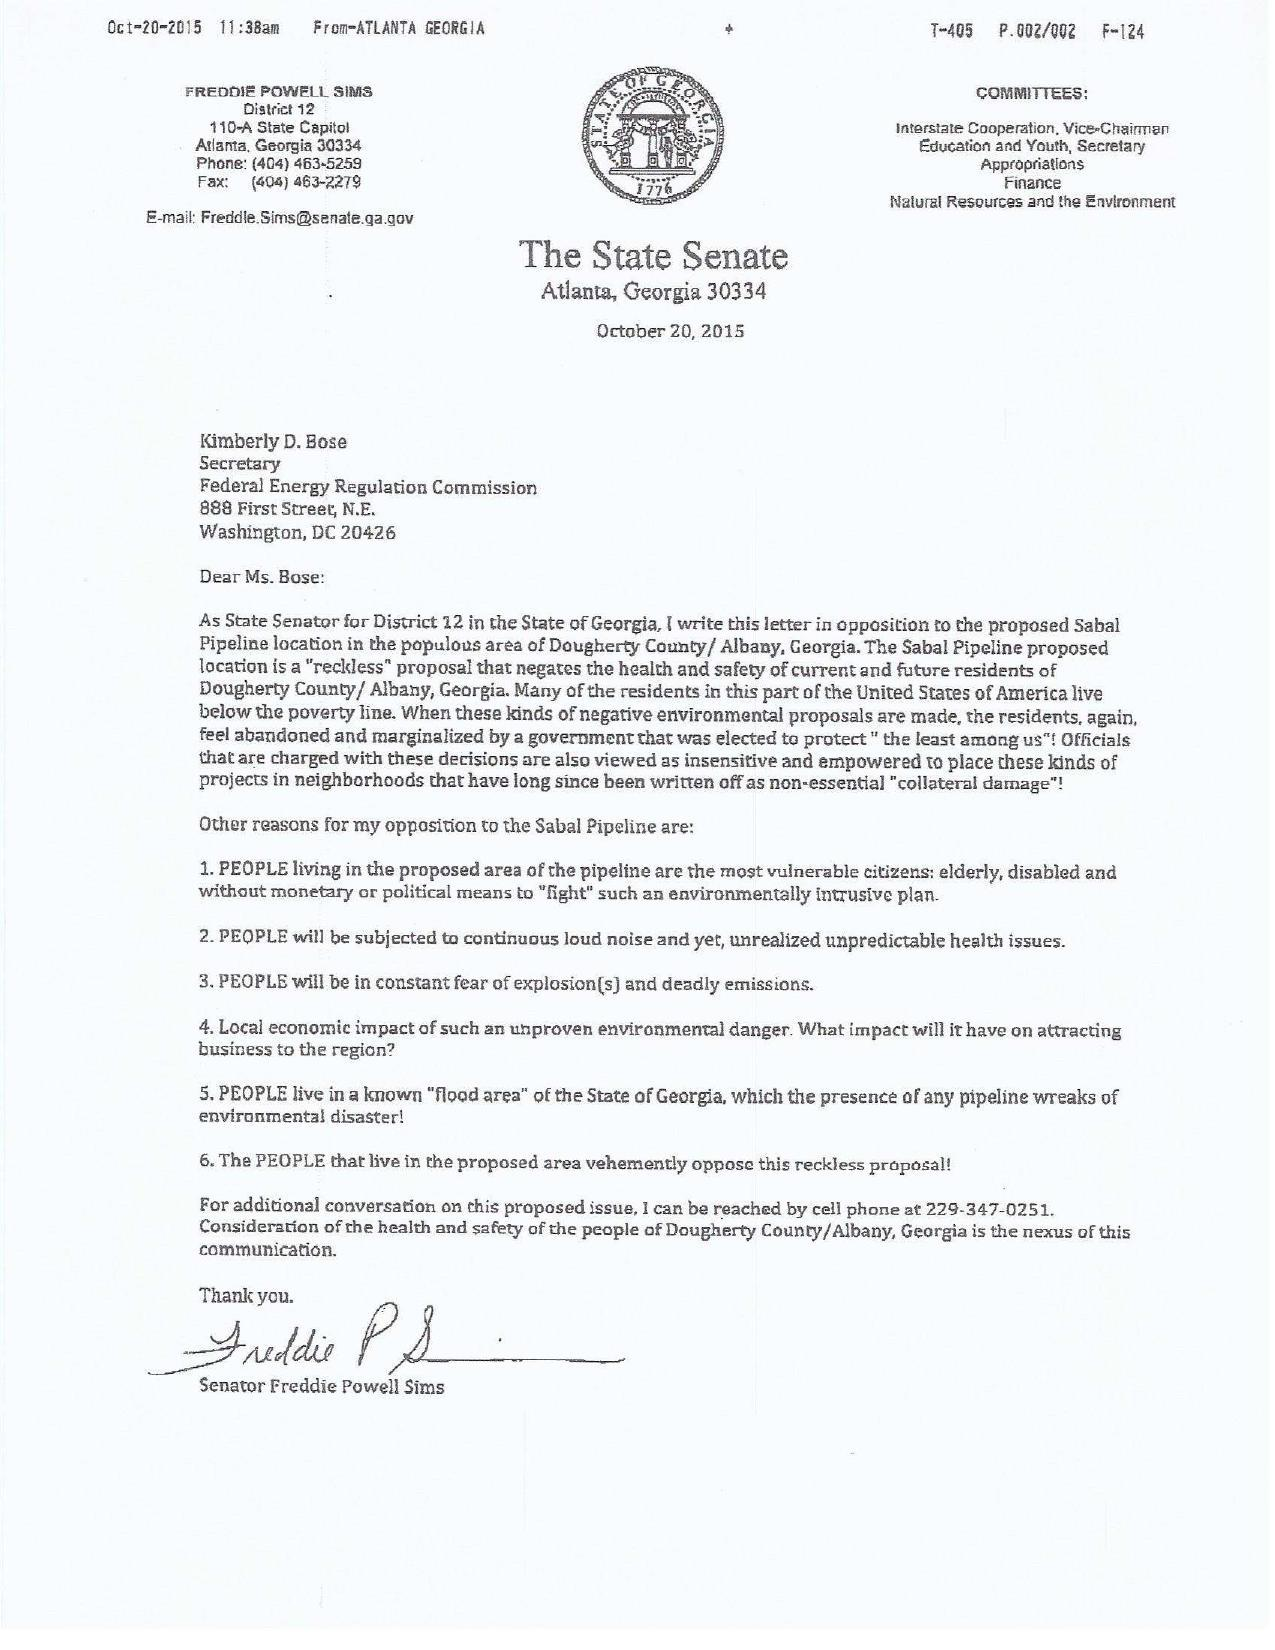 1275x1650 Letter to FERC, in Sabal Trail is a reckless proposal, by GA State Sen. Freddie Powell Sims, for SpectraBusters.org, 23 October 2015